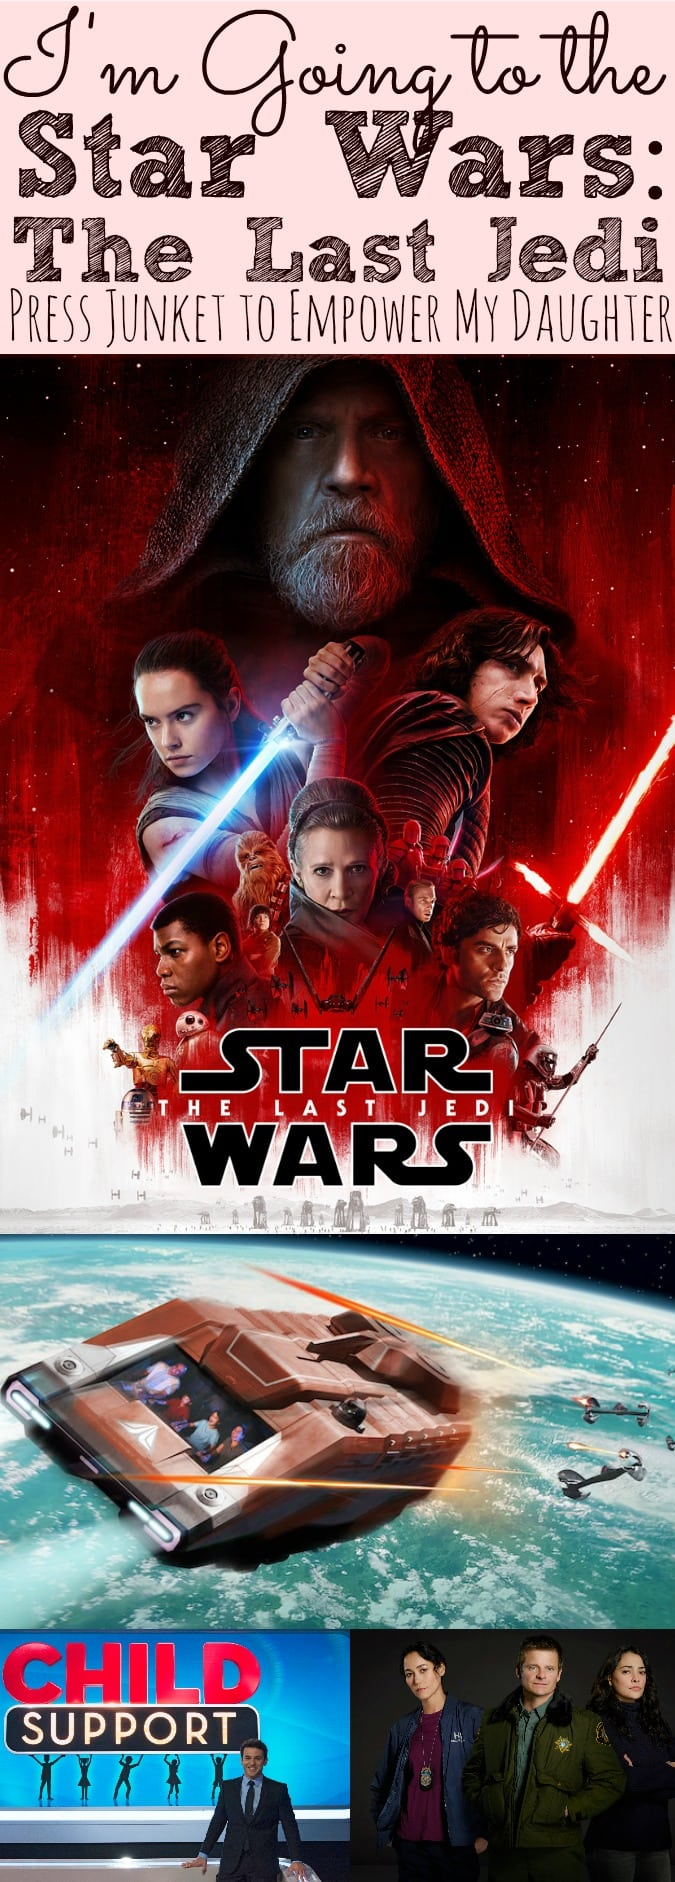 I'm Going To The Star Wars: The Last Jedi Press Junket To Empower My Daughter #TheLastJediEvent (ad) - simplytodaylife.com